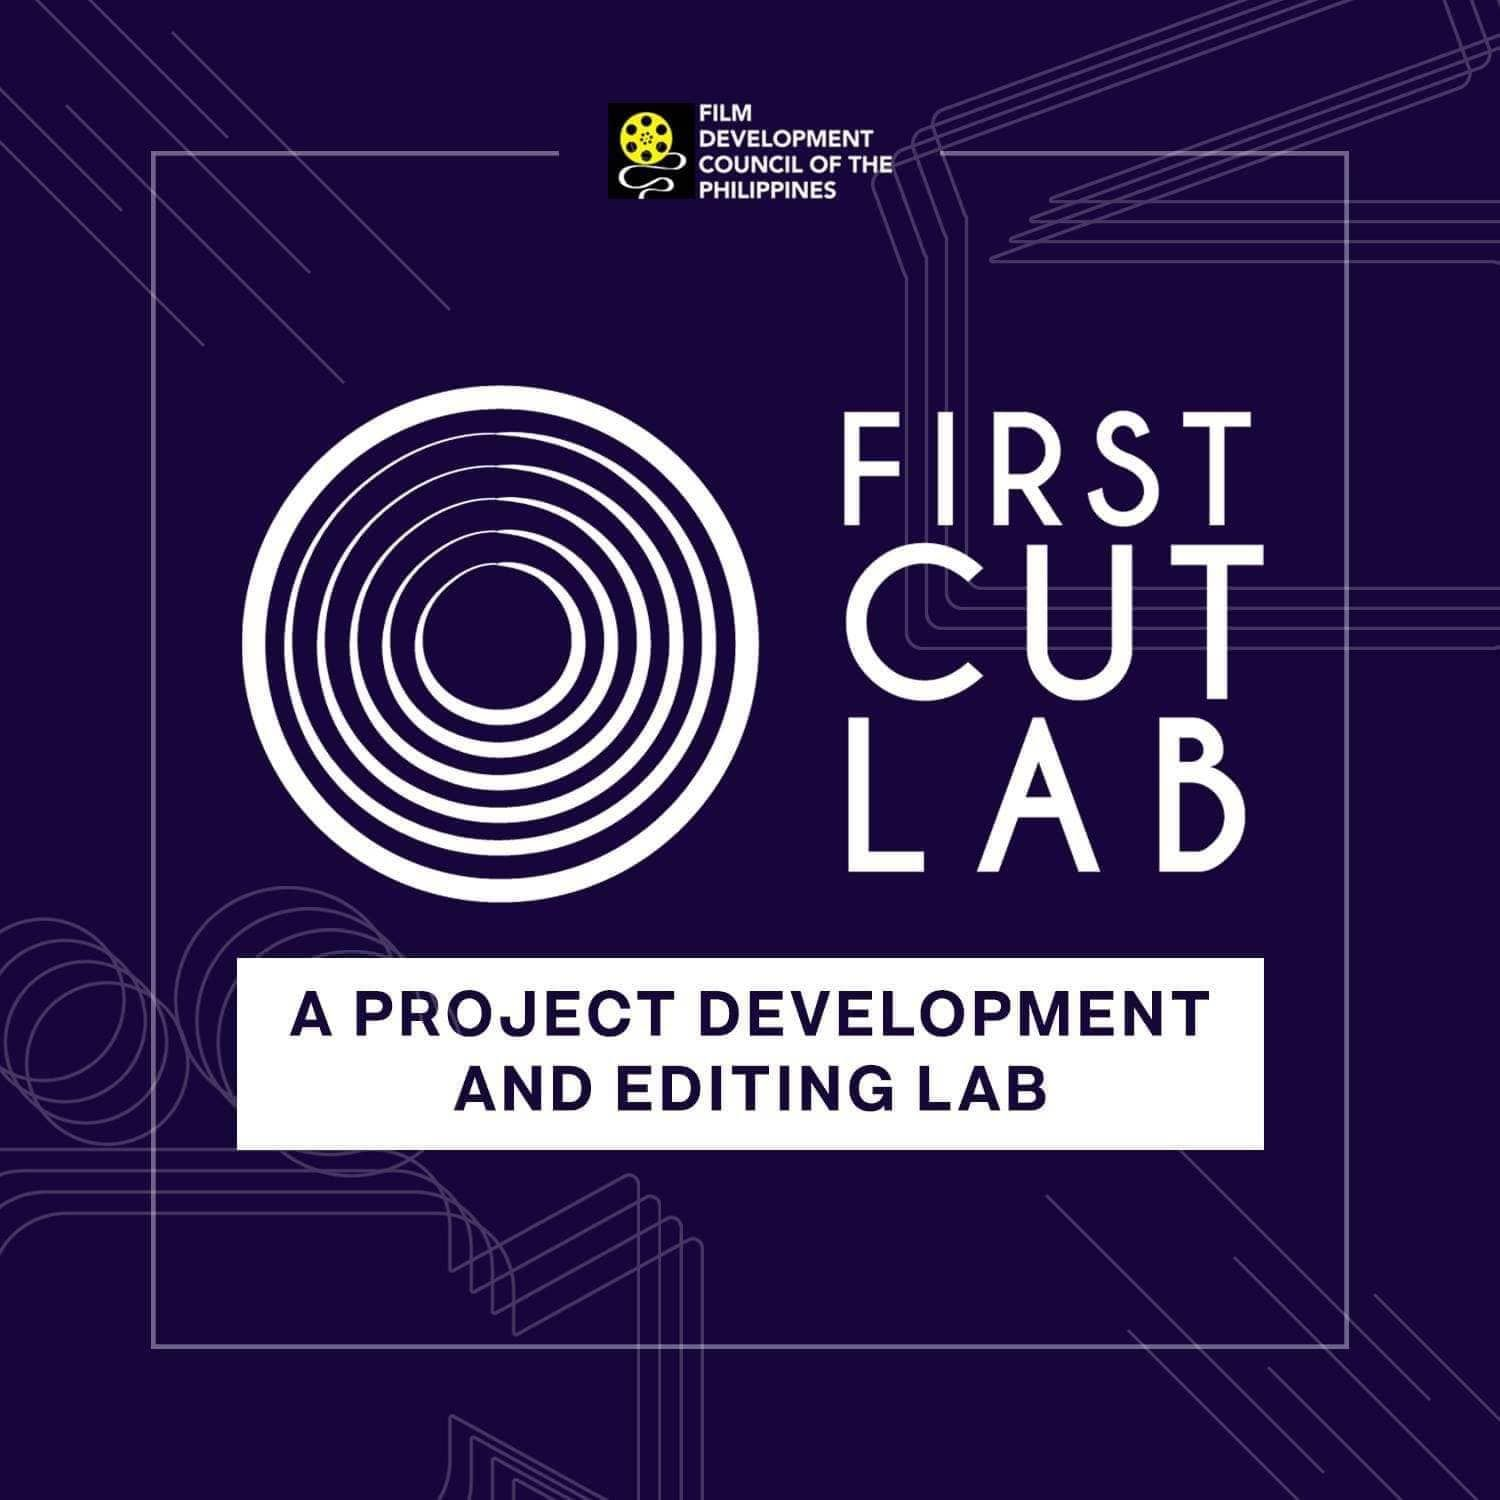 FDCP To Host 1st Cut Lab Int'l Film Conference in Manila